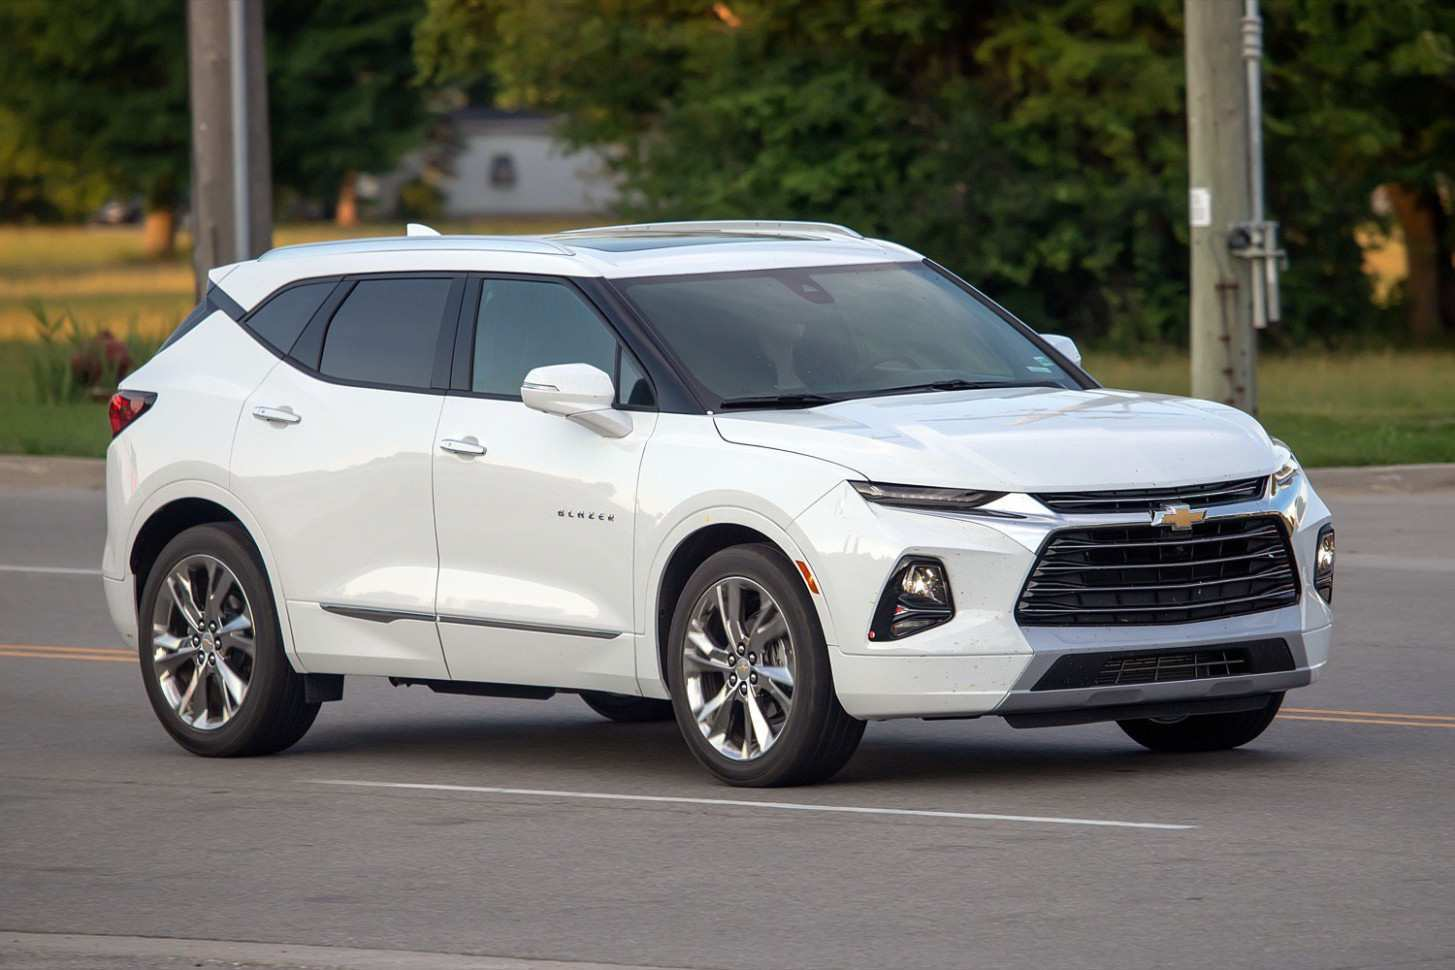 89 All New Chevrolet Blazer 2020 Ss With 500Hp Release